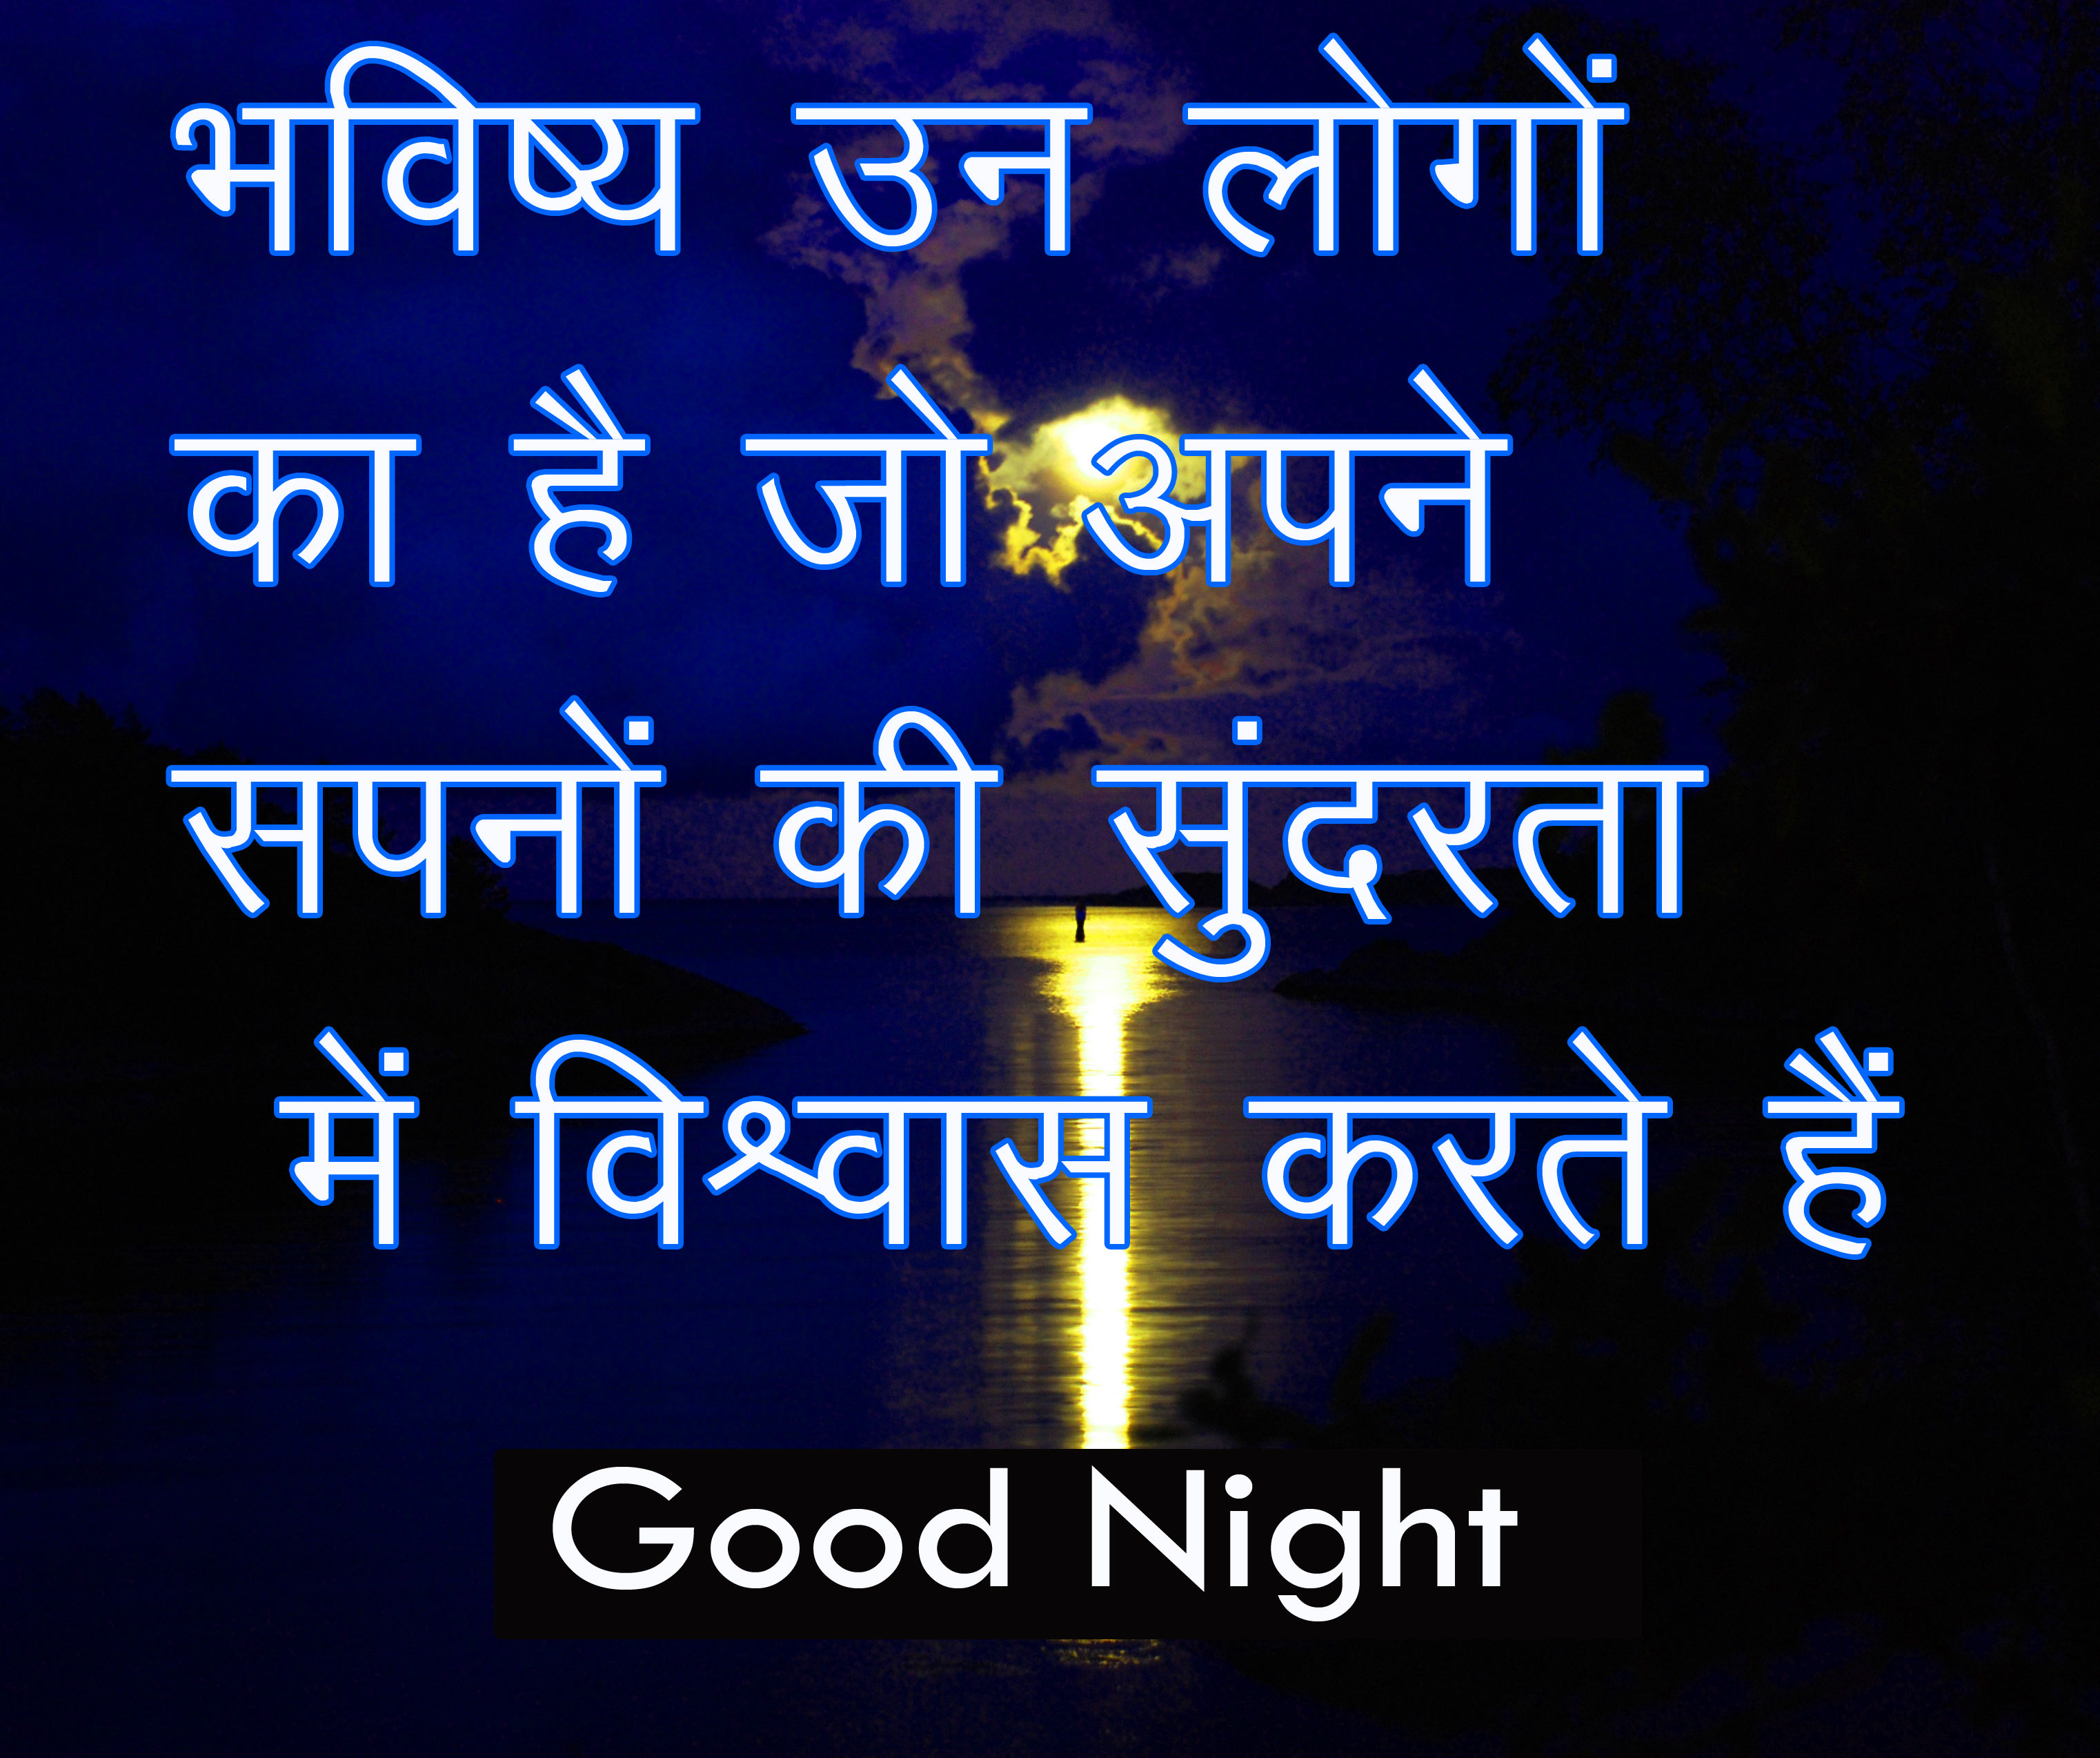 Hindi Motivational Quotes Good Night  Pics Free